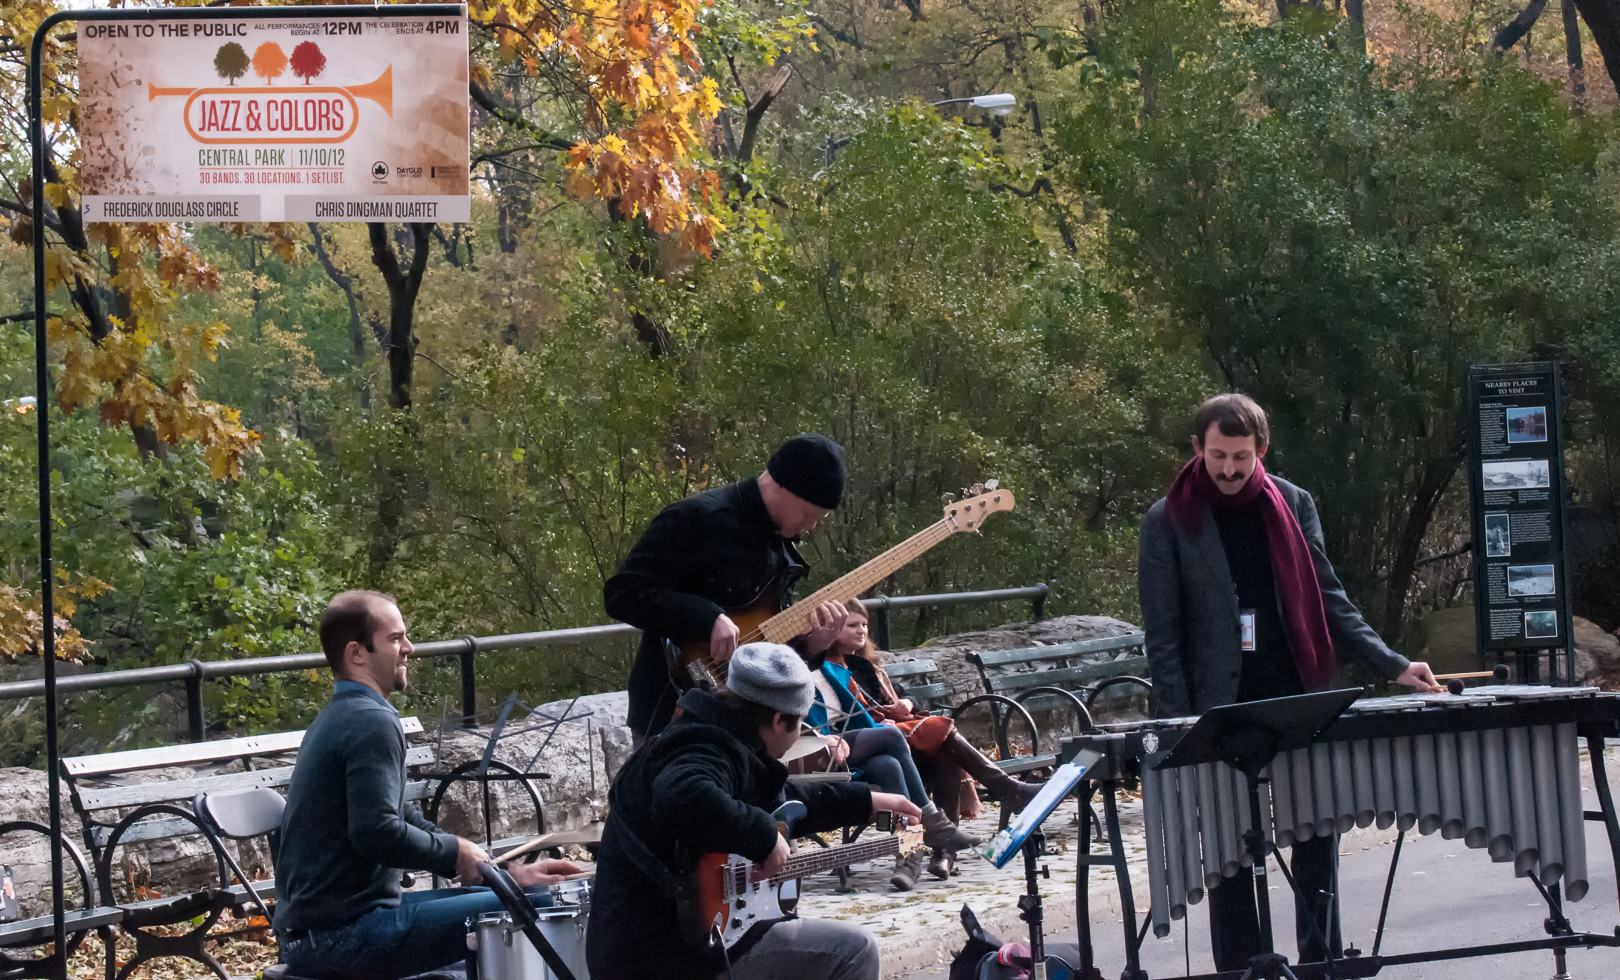 Jared Schonig, Jesse Lewis, Ike Sturm and Chris Dingman at Jazz and Colors in Central Park